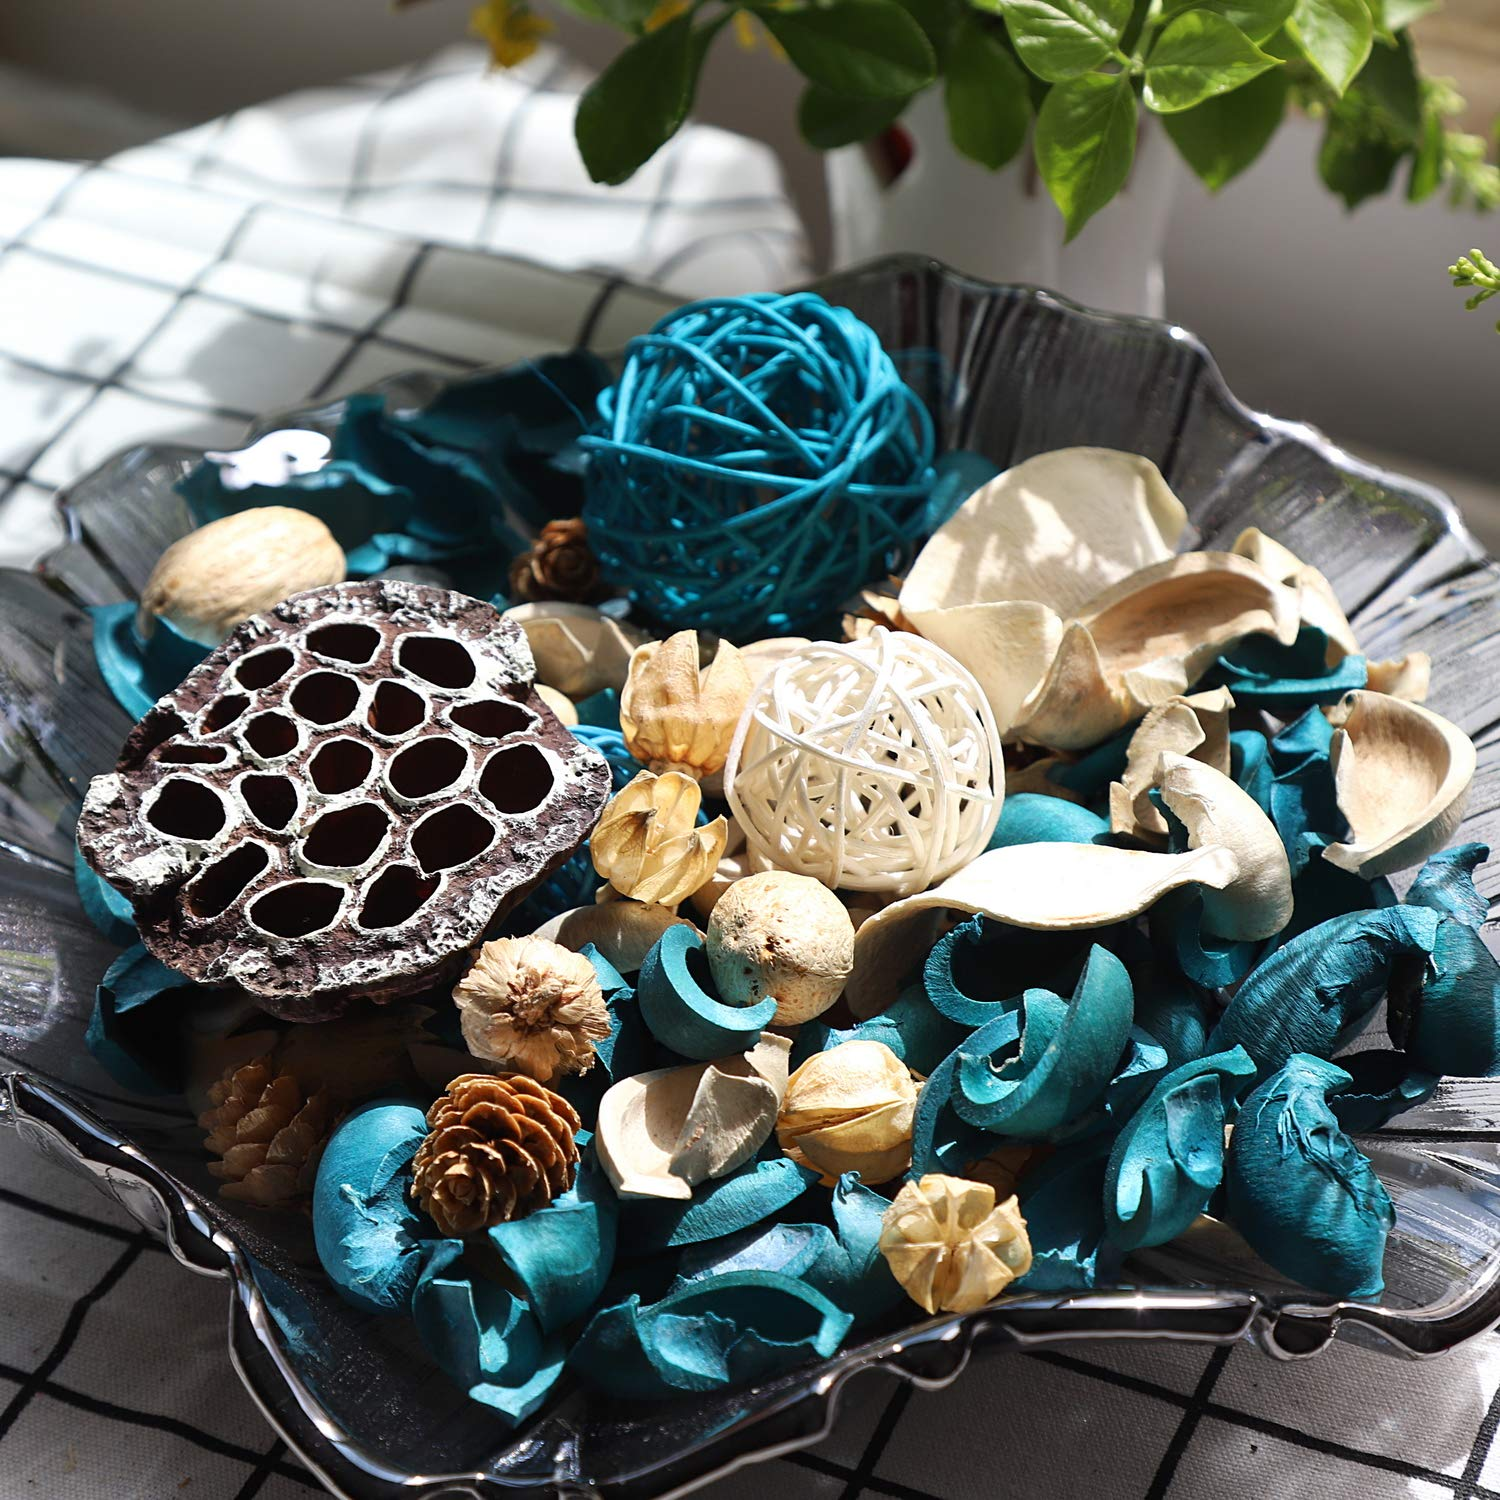 Qingbei Rina Ocean Scent Summer Potpourri Bag Decorative Perfume Sachet, Rattan Balls Lotus Pods Pine Cones Dried Flowers and Plants, 9.9 Ounce Turquoise Blue by Qingbei Rina (Image #4)